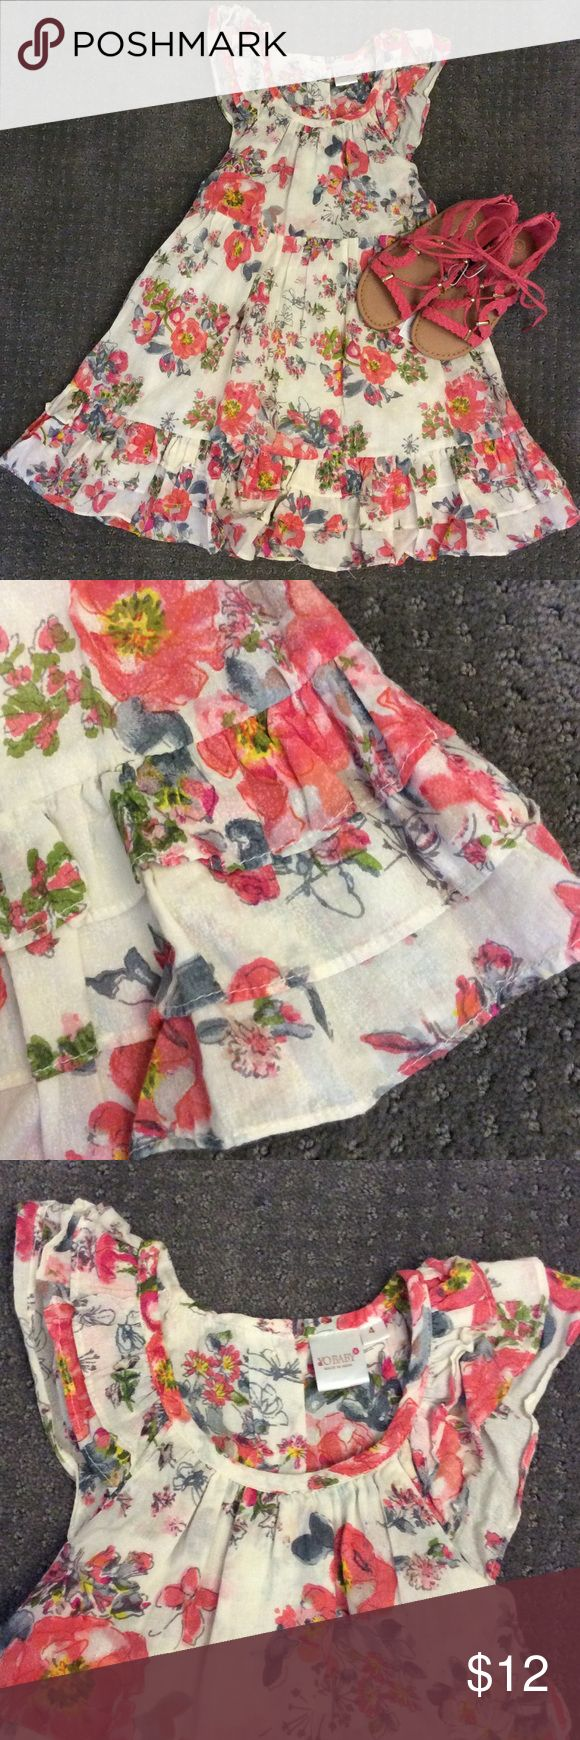 Floral Sundress Sz 4 floral sundress, size 4, gathered with ties in the back, ruffled three tier hem, ruffled sleeves, adorable boho girliness! worn two times! yo baby Dresses Casual